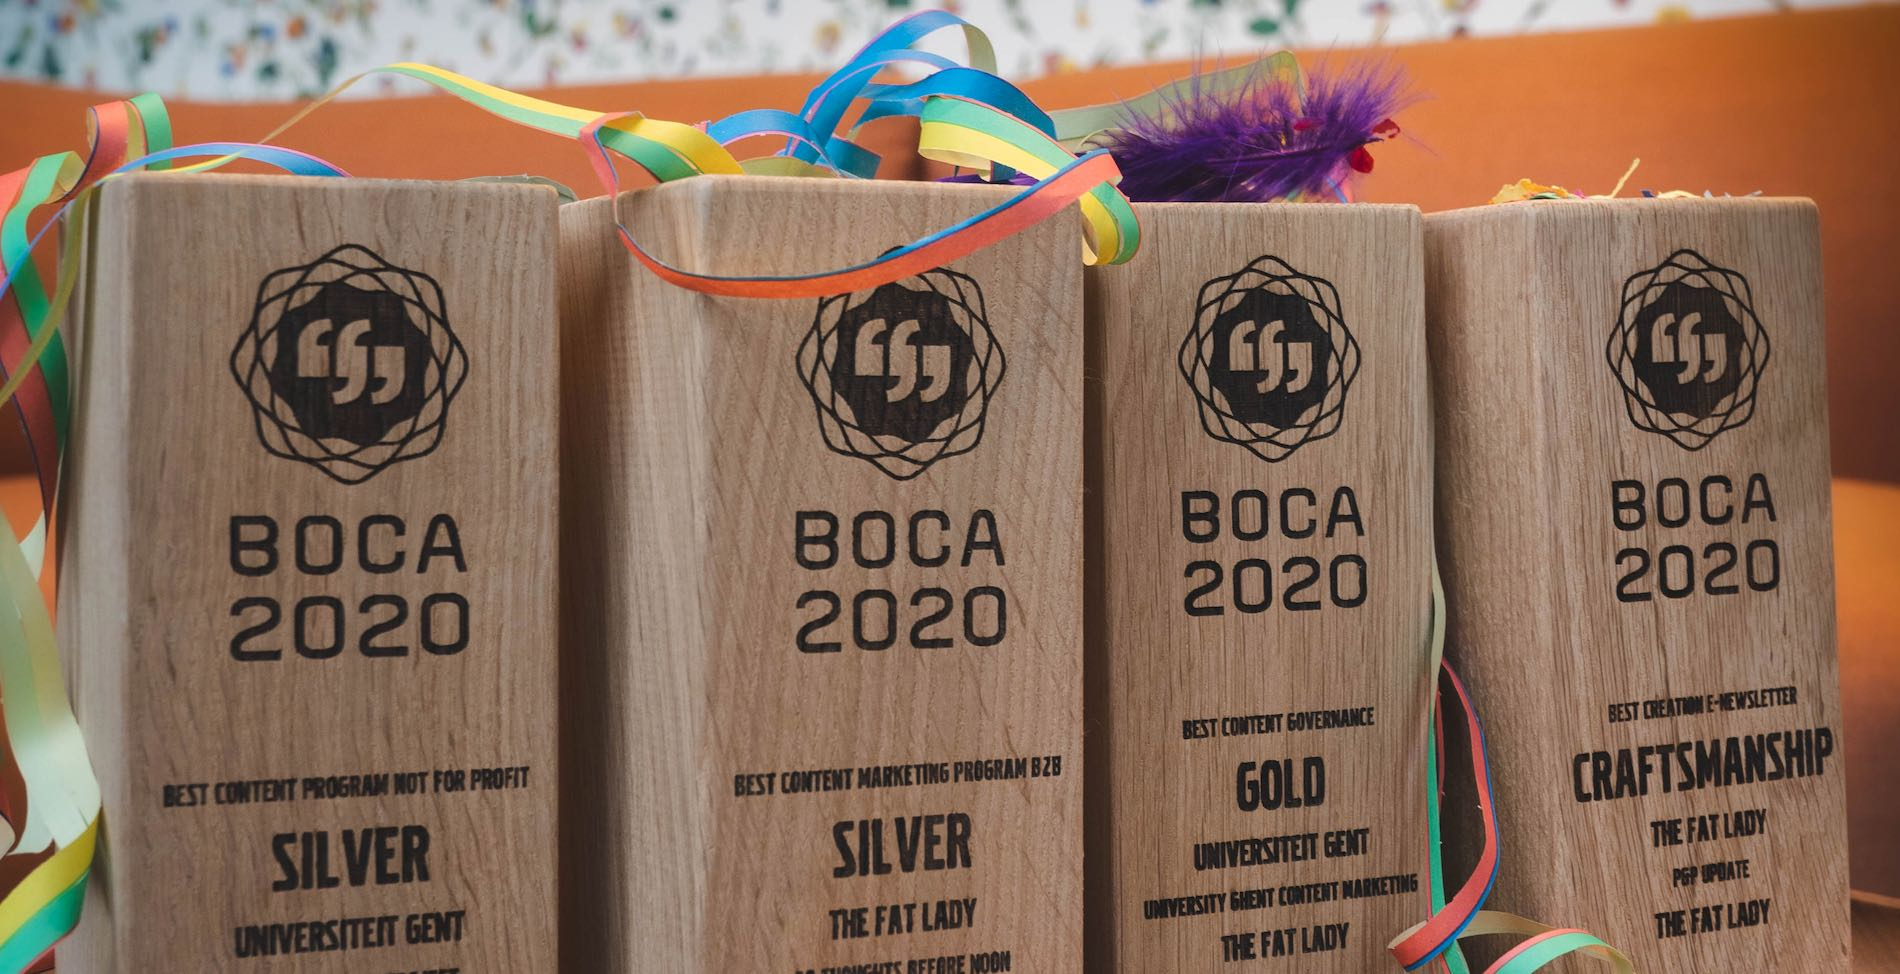 BOCA 2020 : Gold pour The Fat Lady/UGent et D-artagnan/Alpro